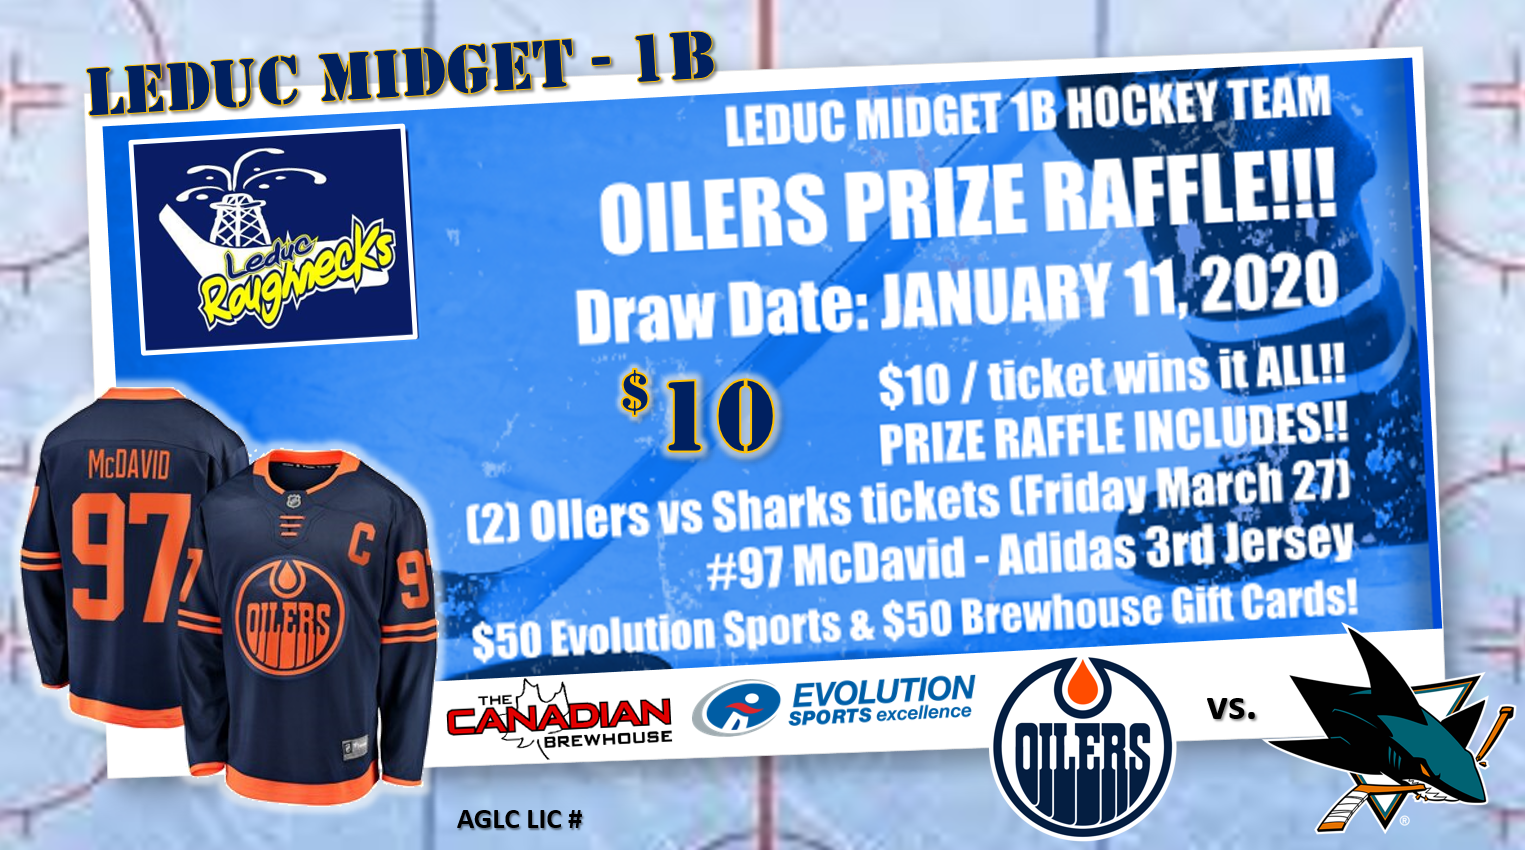 OILERS TICKET and JERSEY RAFFLE